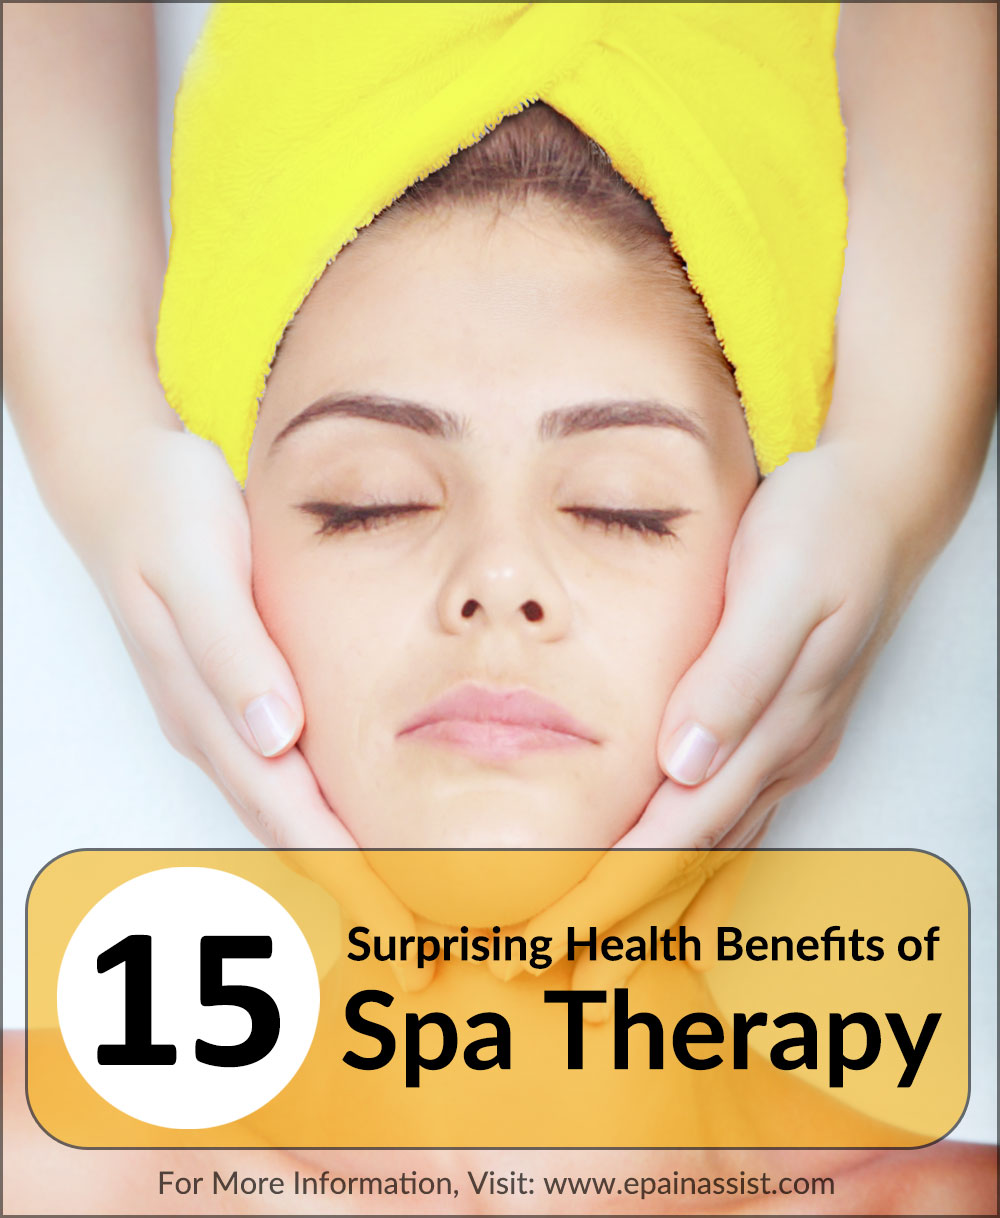 Health Benefits of Spa Therapy